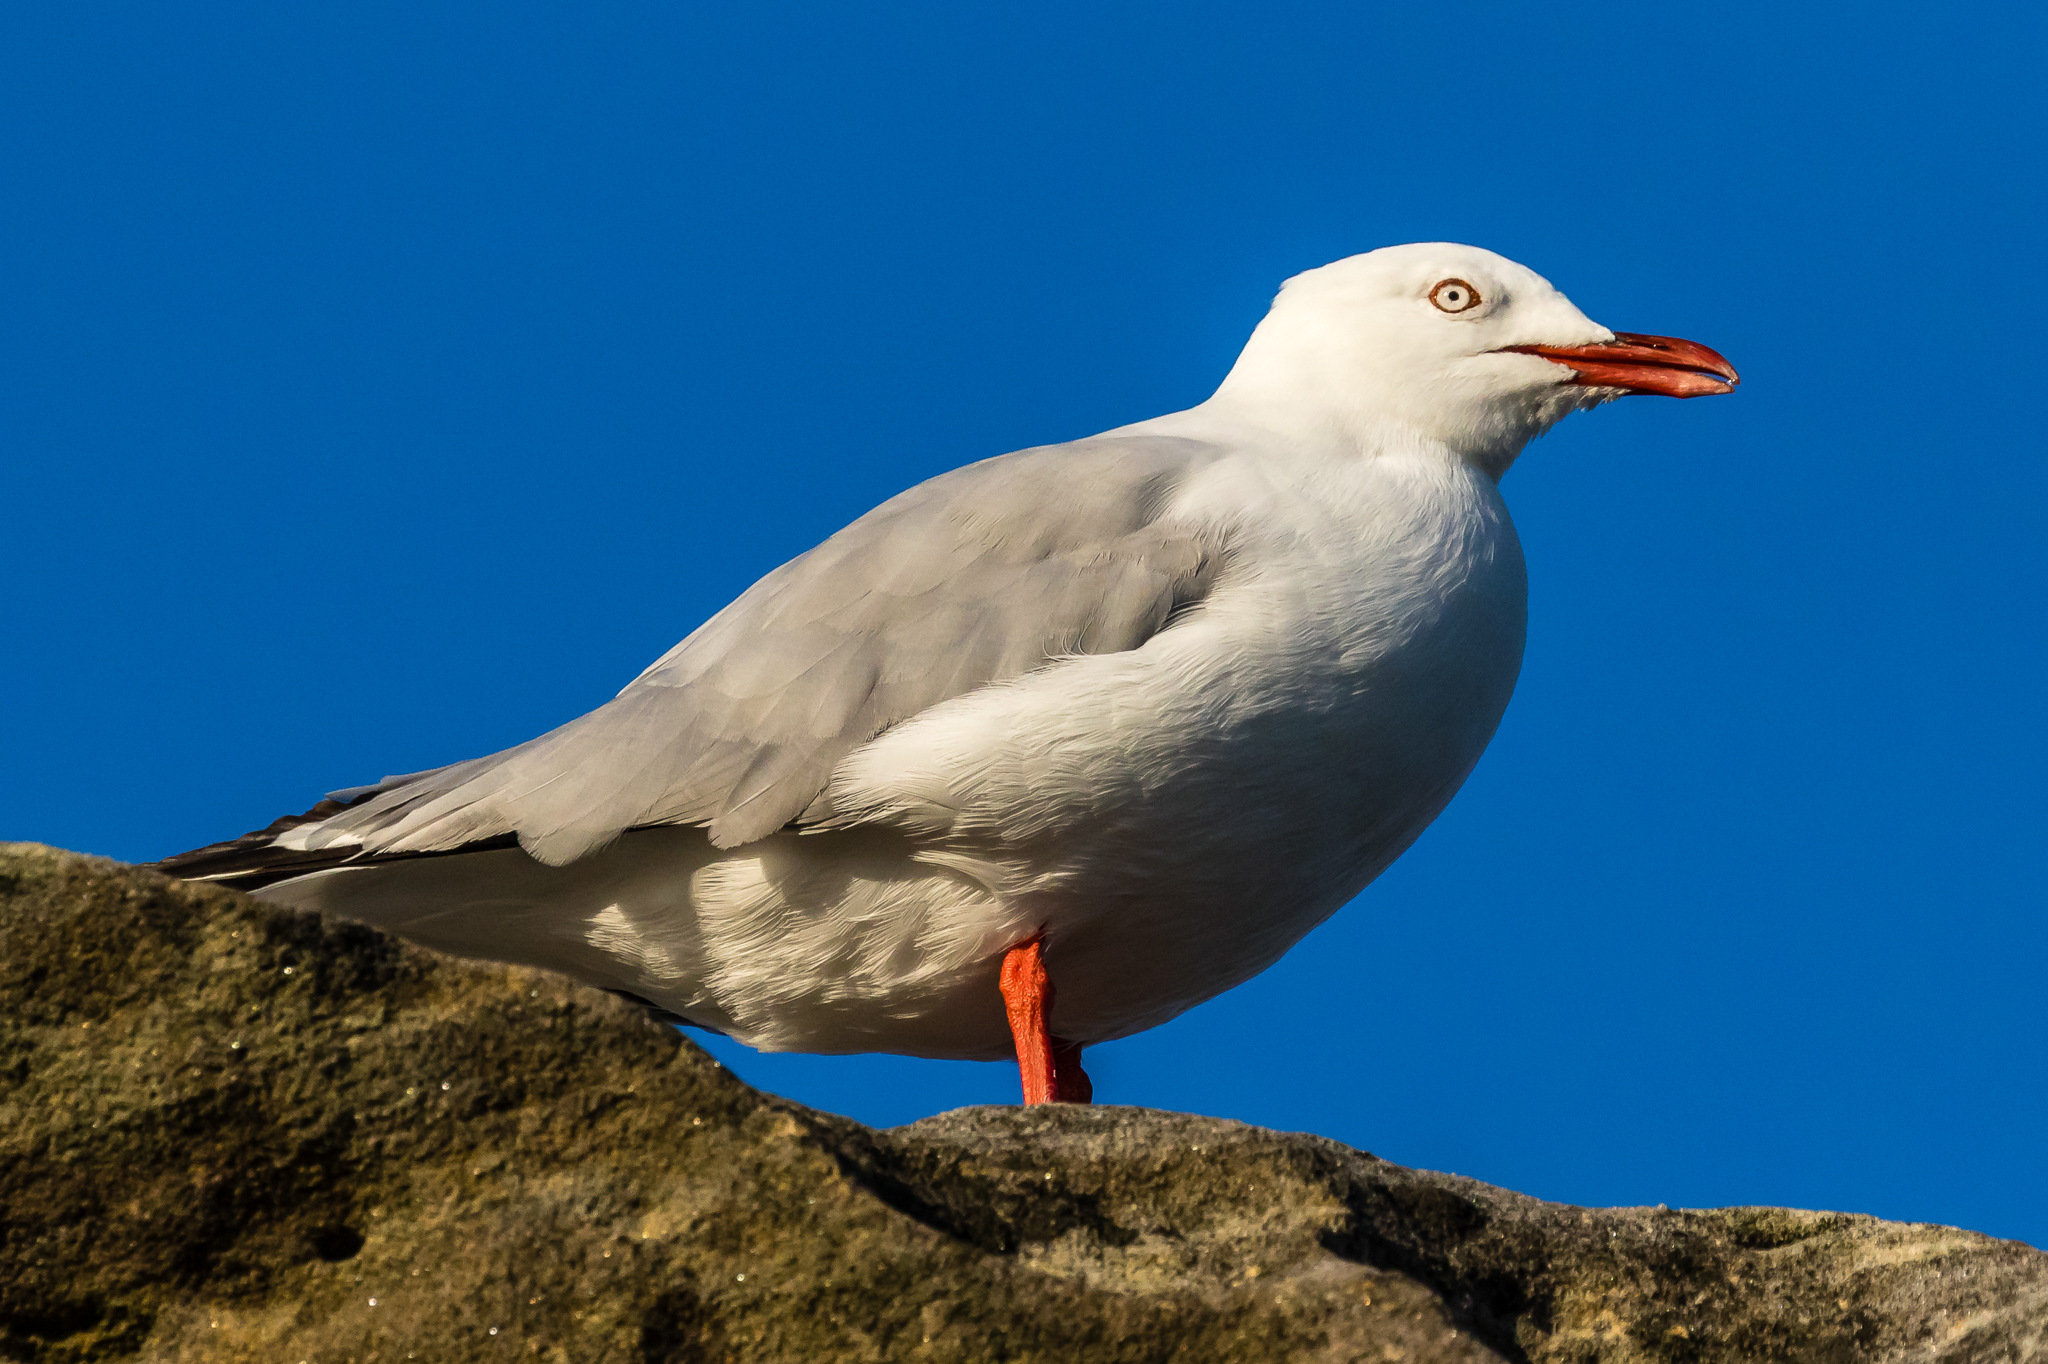 Silver Gulls, the most common Australian gull, is a familiar scavenger of food scraps at the beach and around the city.